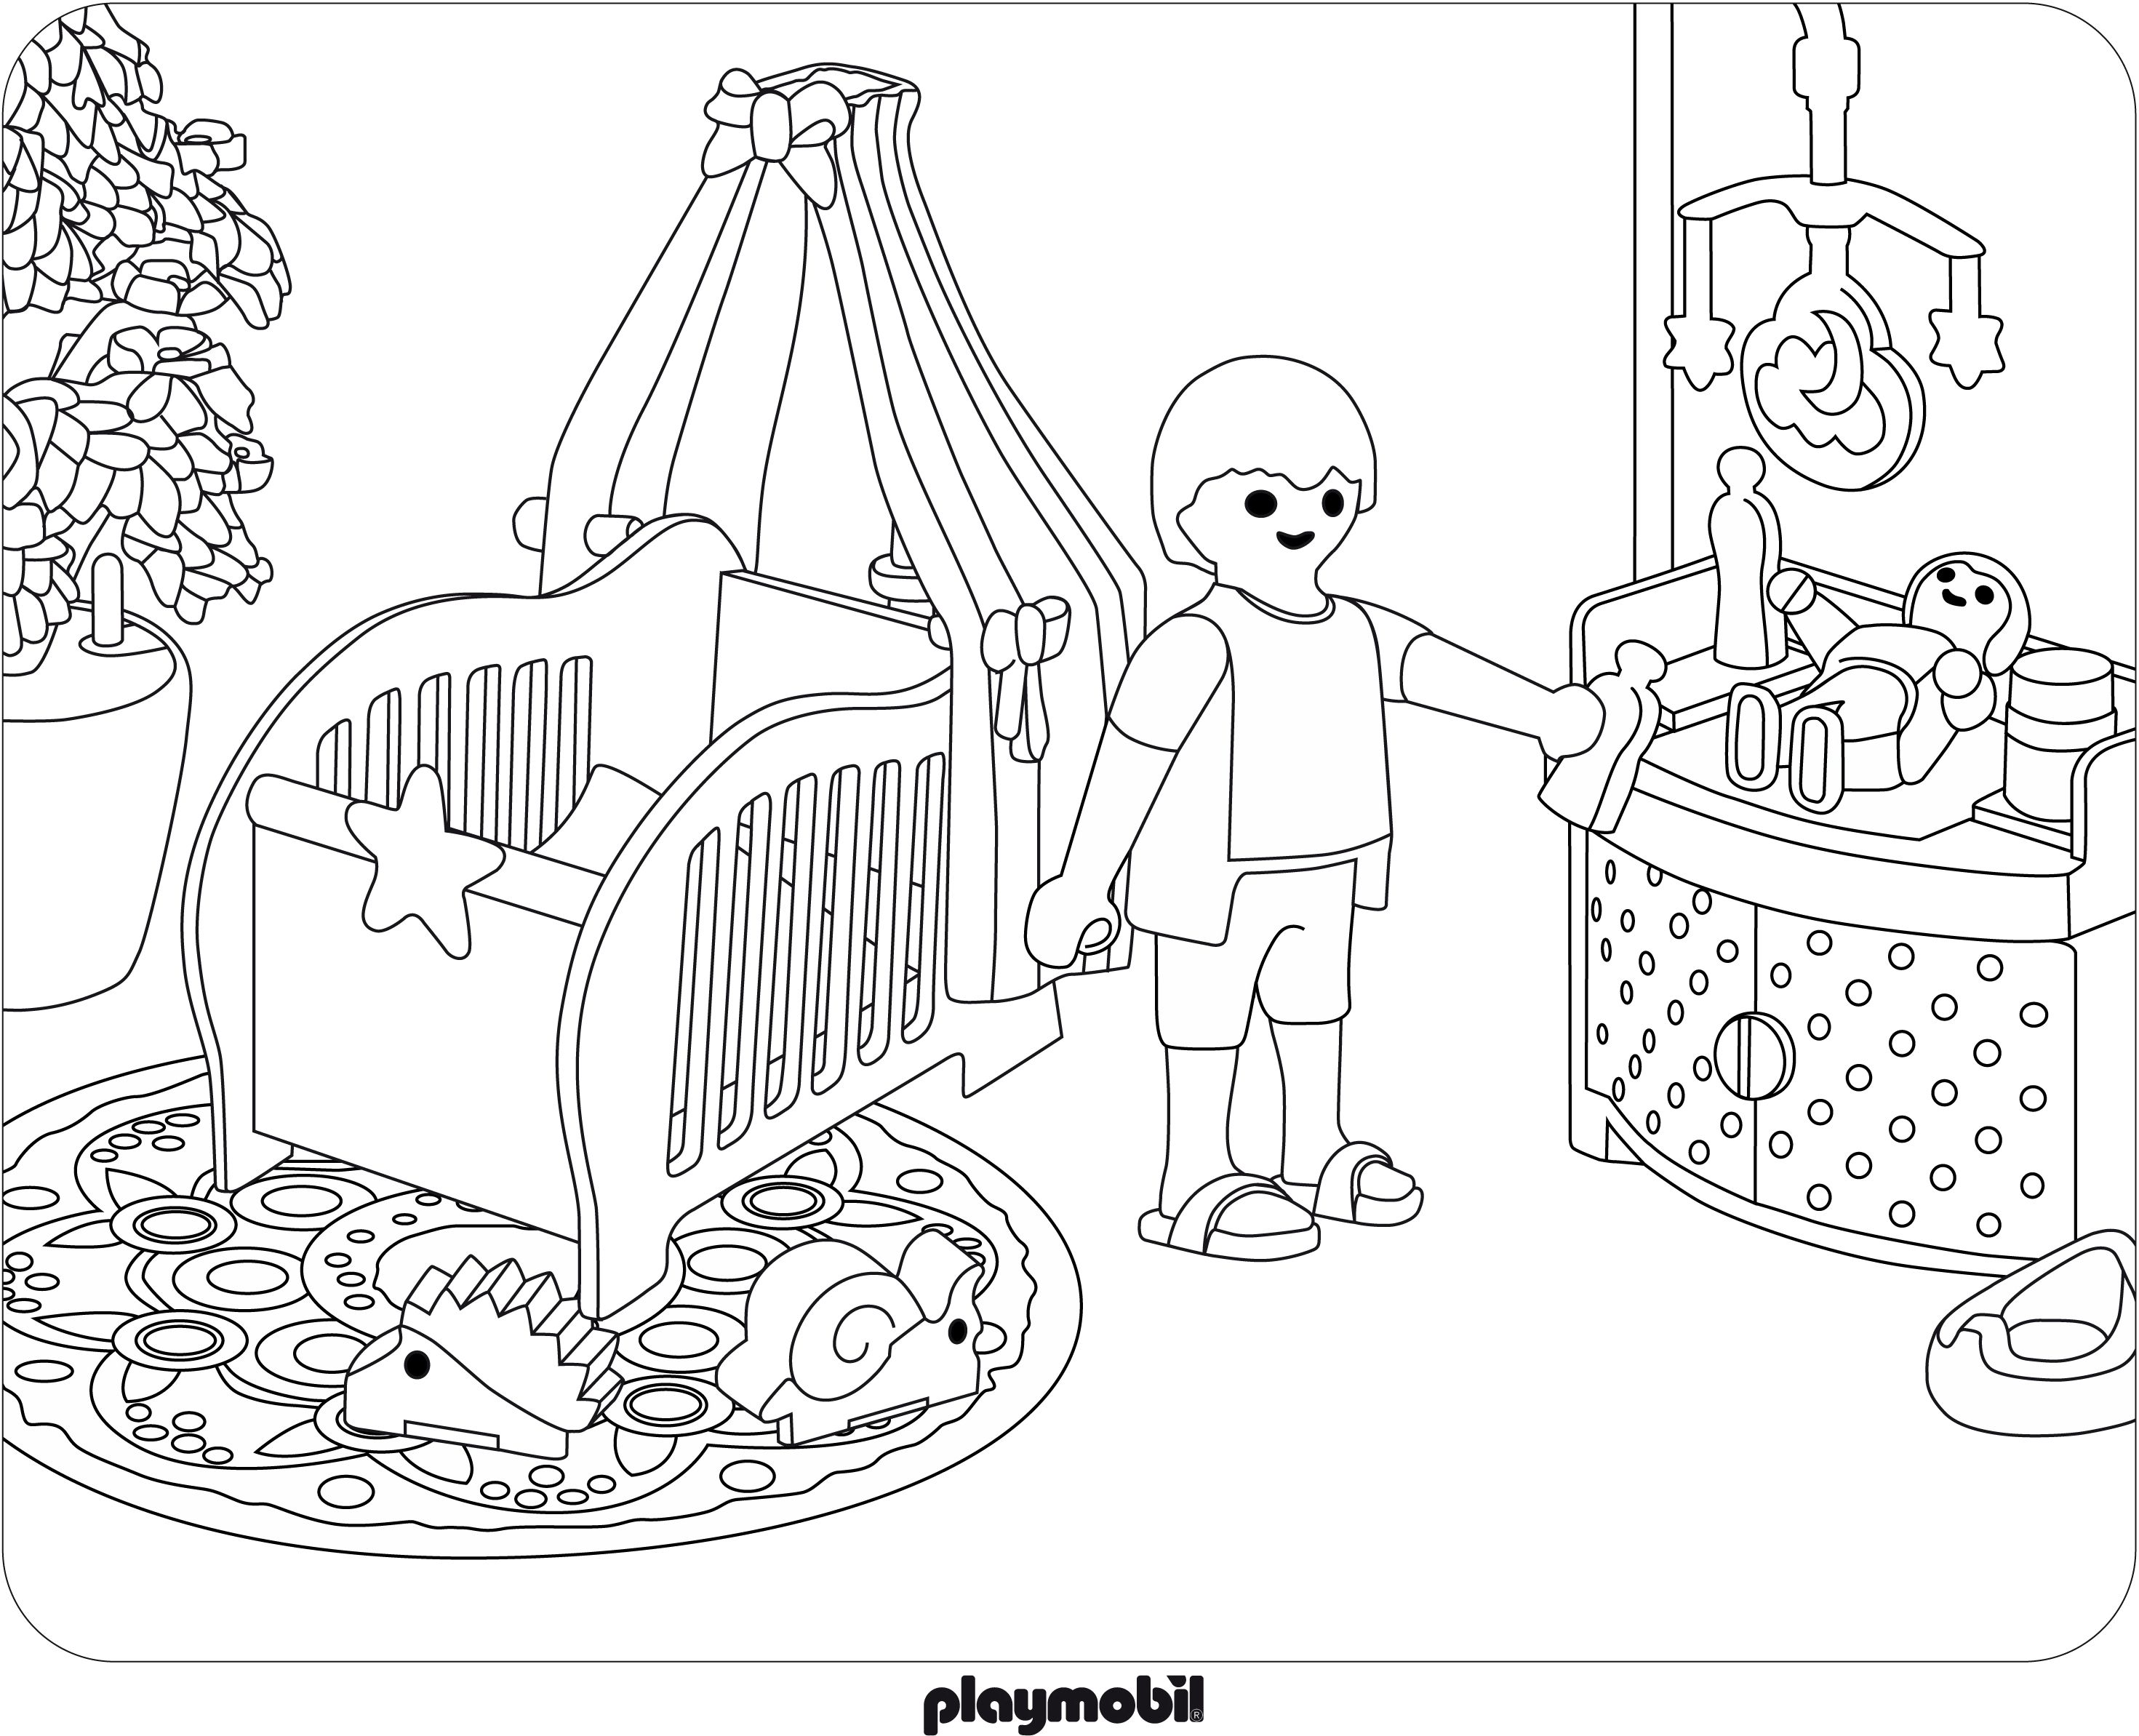 ausmalbilder playmobil  Pirate coloring pages, Coloring pages